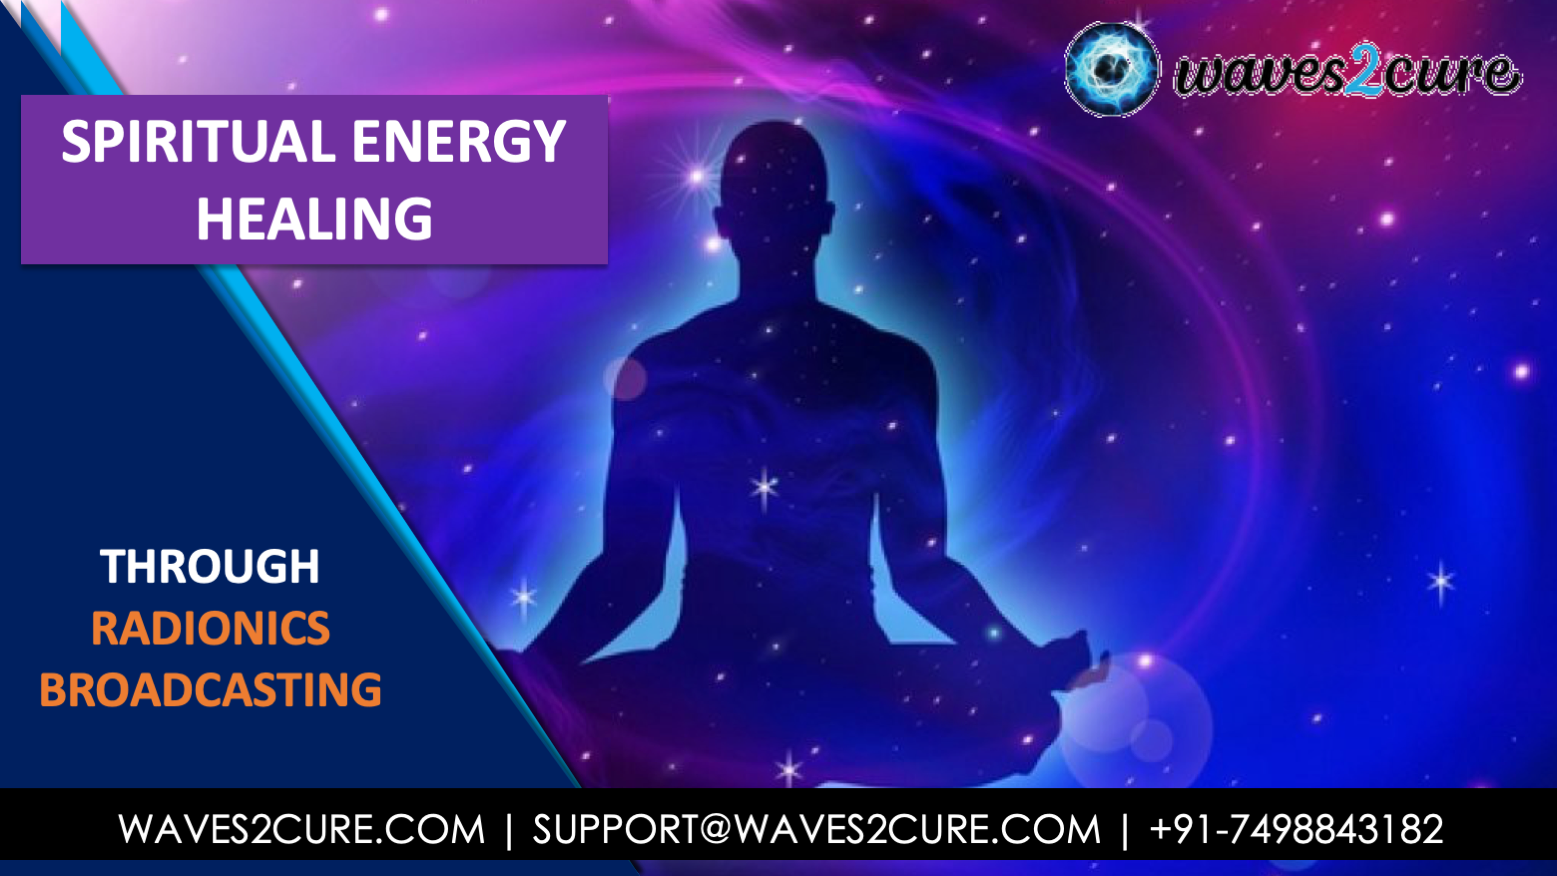 Boost your Spiritual Energy Through Radionics Broadcasting